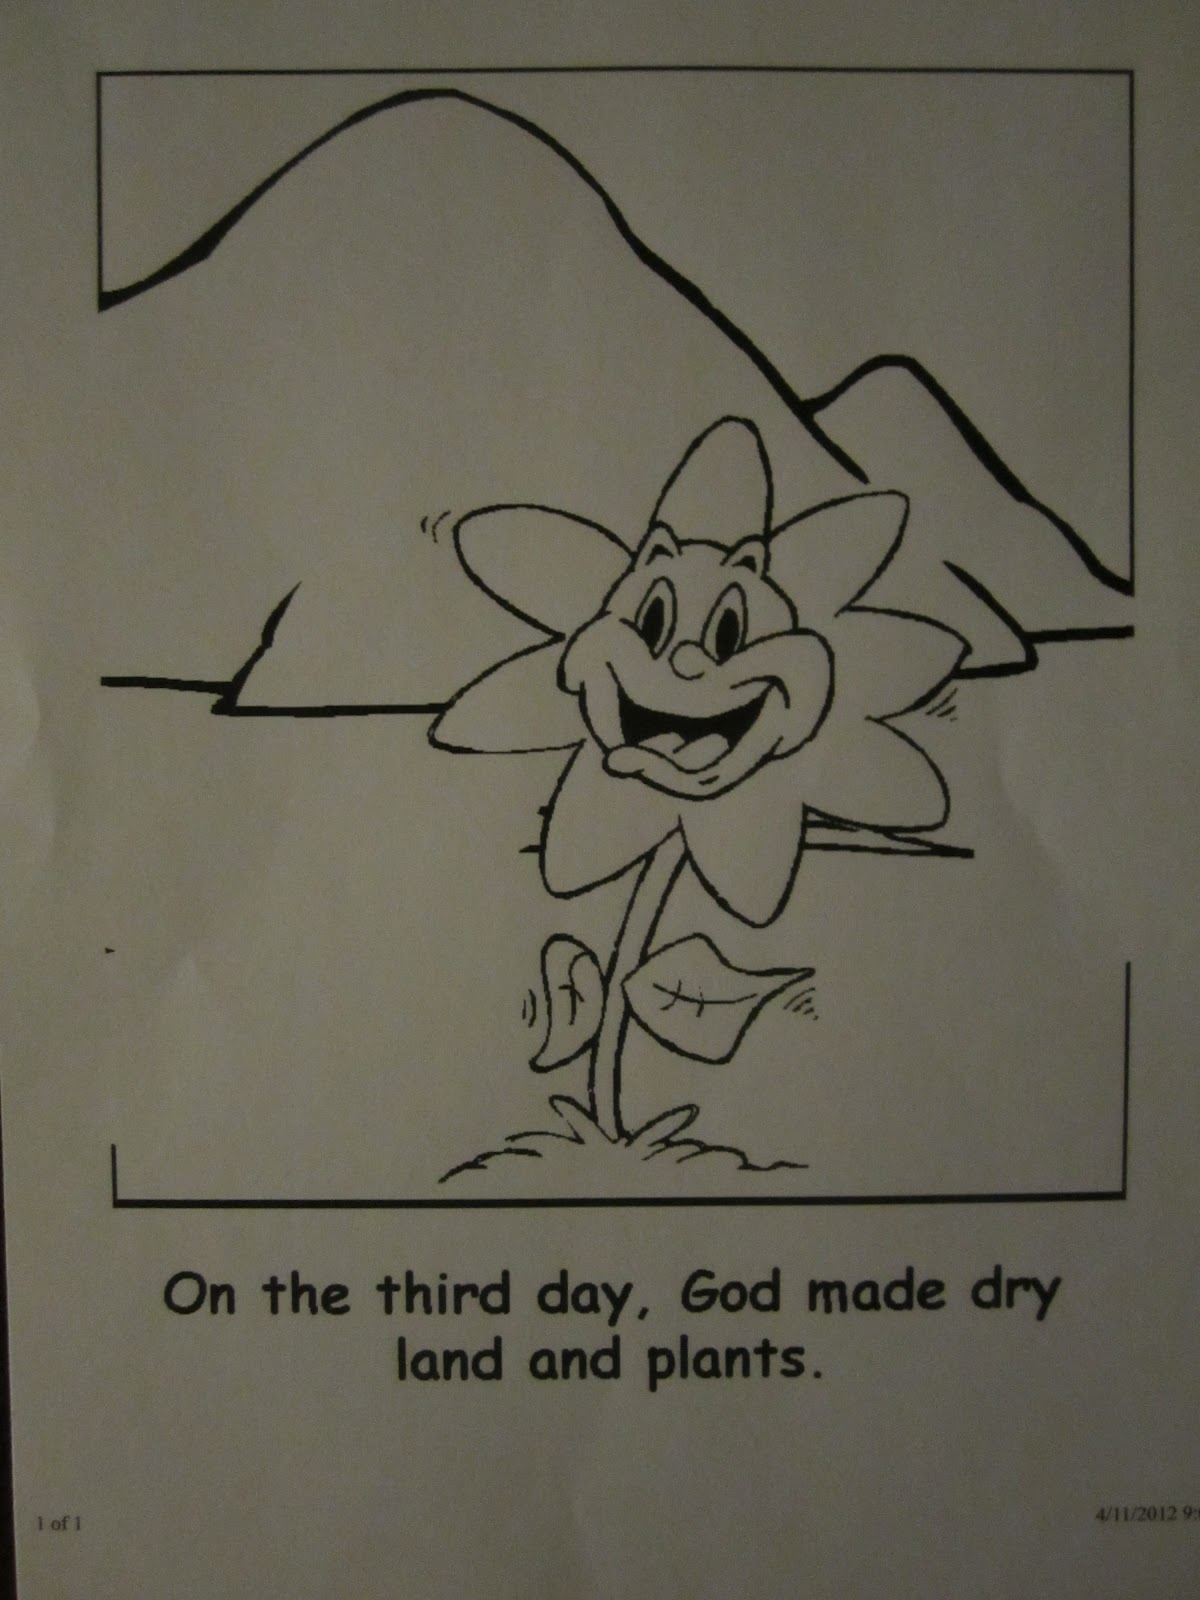 Dltk mothers day coloring pages - Dltk Bible Coloring Pages All About Free Prodigal Son Coloring Dltk Bible Coloring Pages All About Free Prodigal Son Coloring